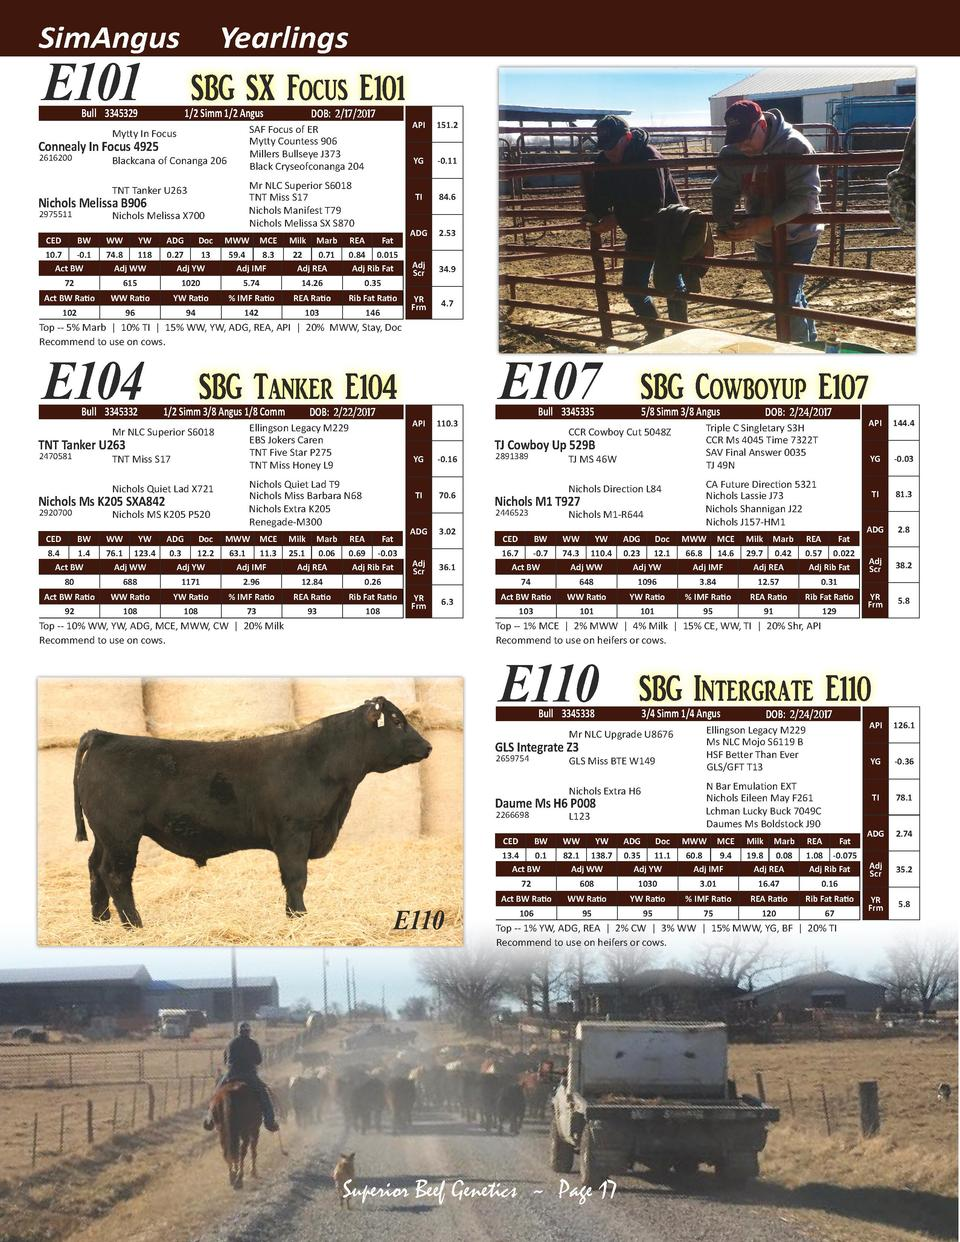 SimAngus  Yearlings  E101  SBG SX Focus E101  Bull 3345329  1 2 Simm 1 2 Angus  Mytty In Focus  Connealy In Focus 4925 261...